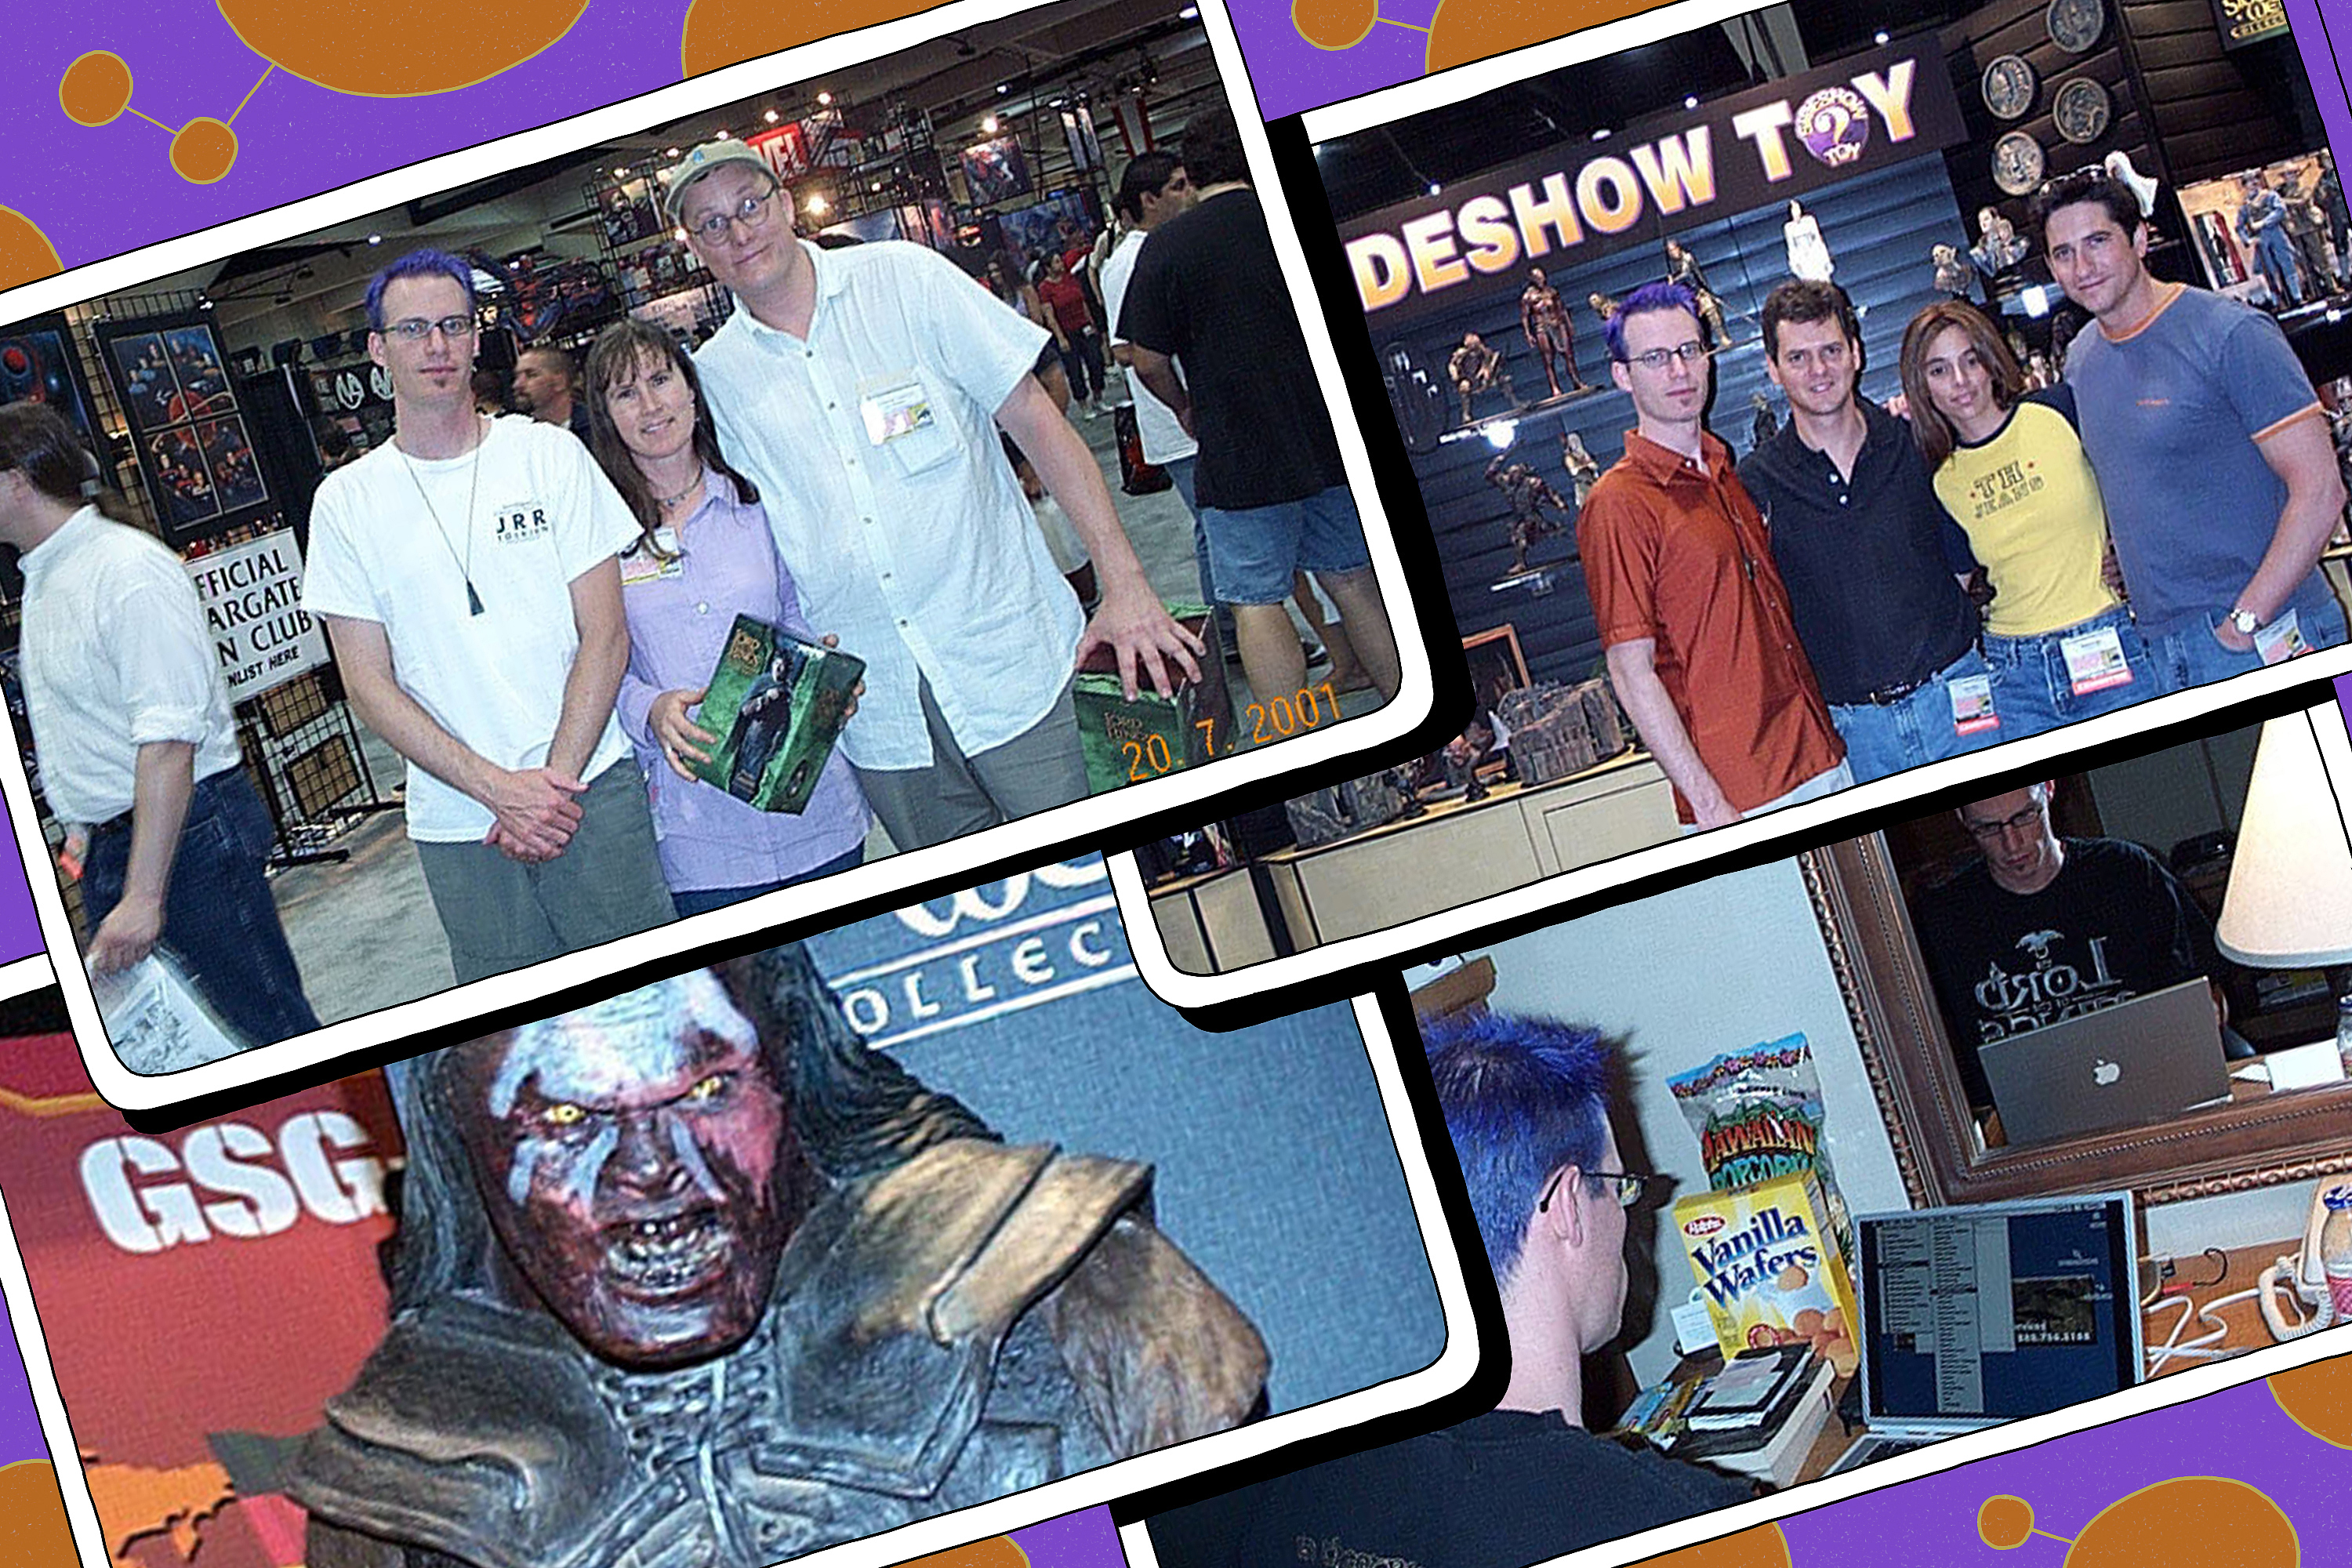 Comic grid featuring four images from Comic-Con 2001